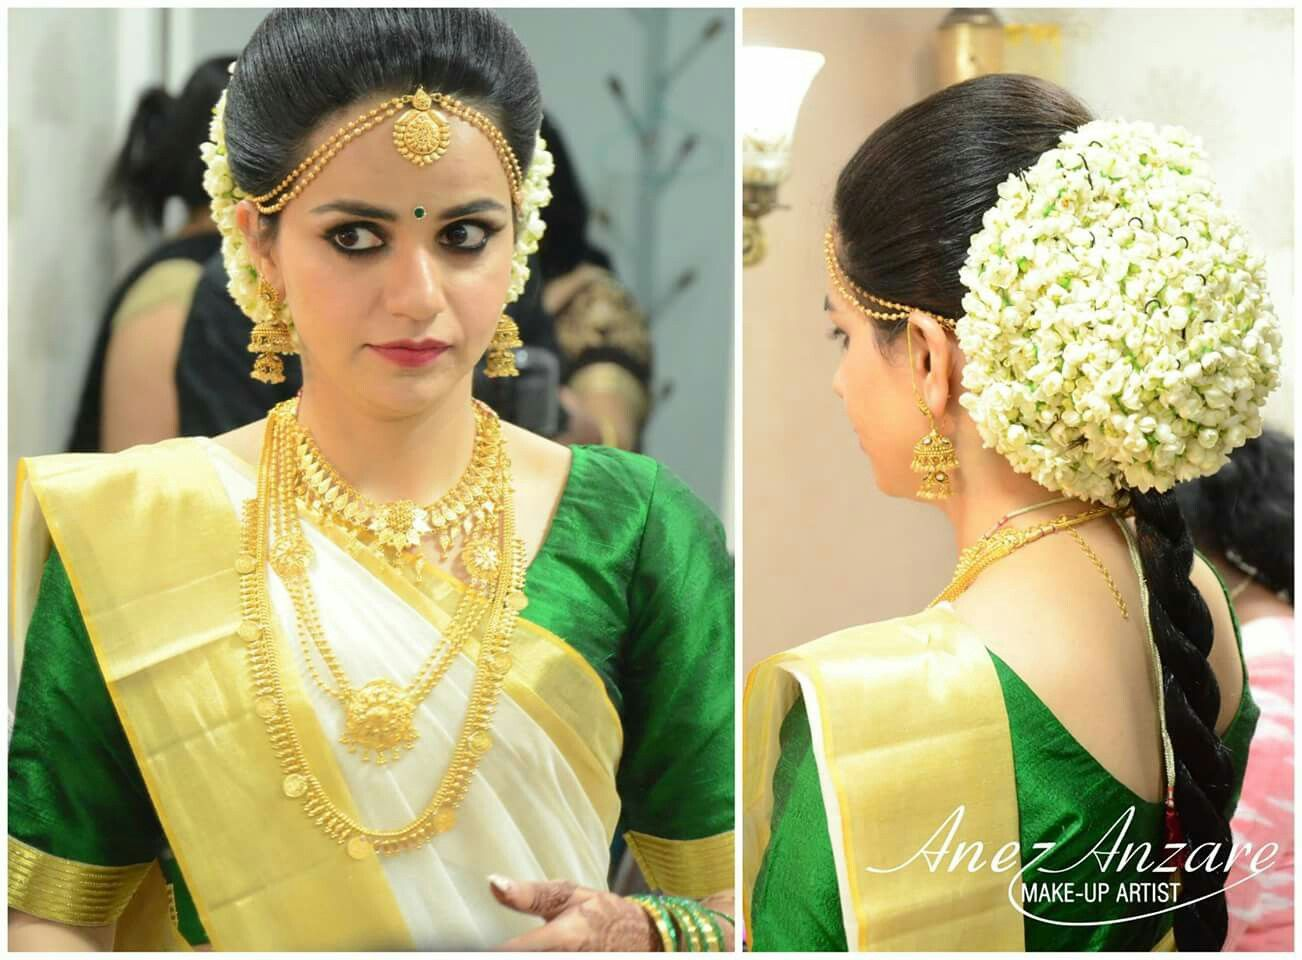 What A Beautiful Large Low Bun Covered With Flowers Care However Should Be T Hairstyles Kerala South Indian Wedding Hairstyles Bridal Hairstyle Indian Wedding